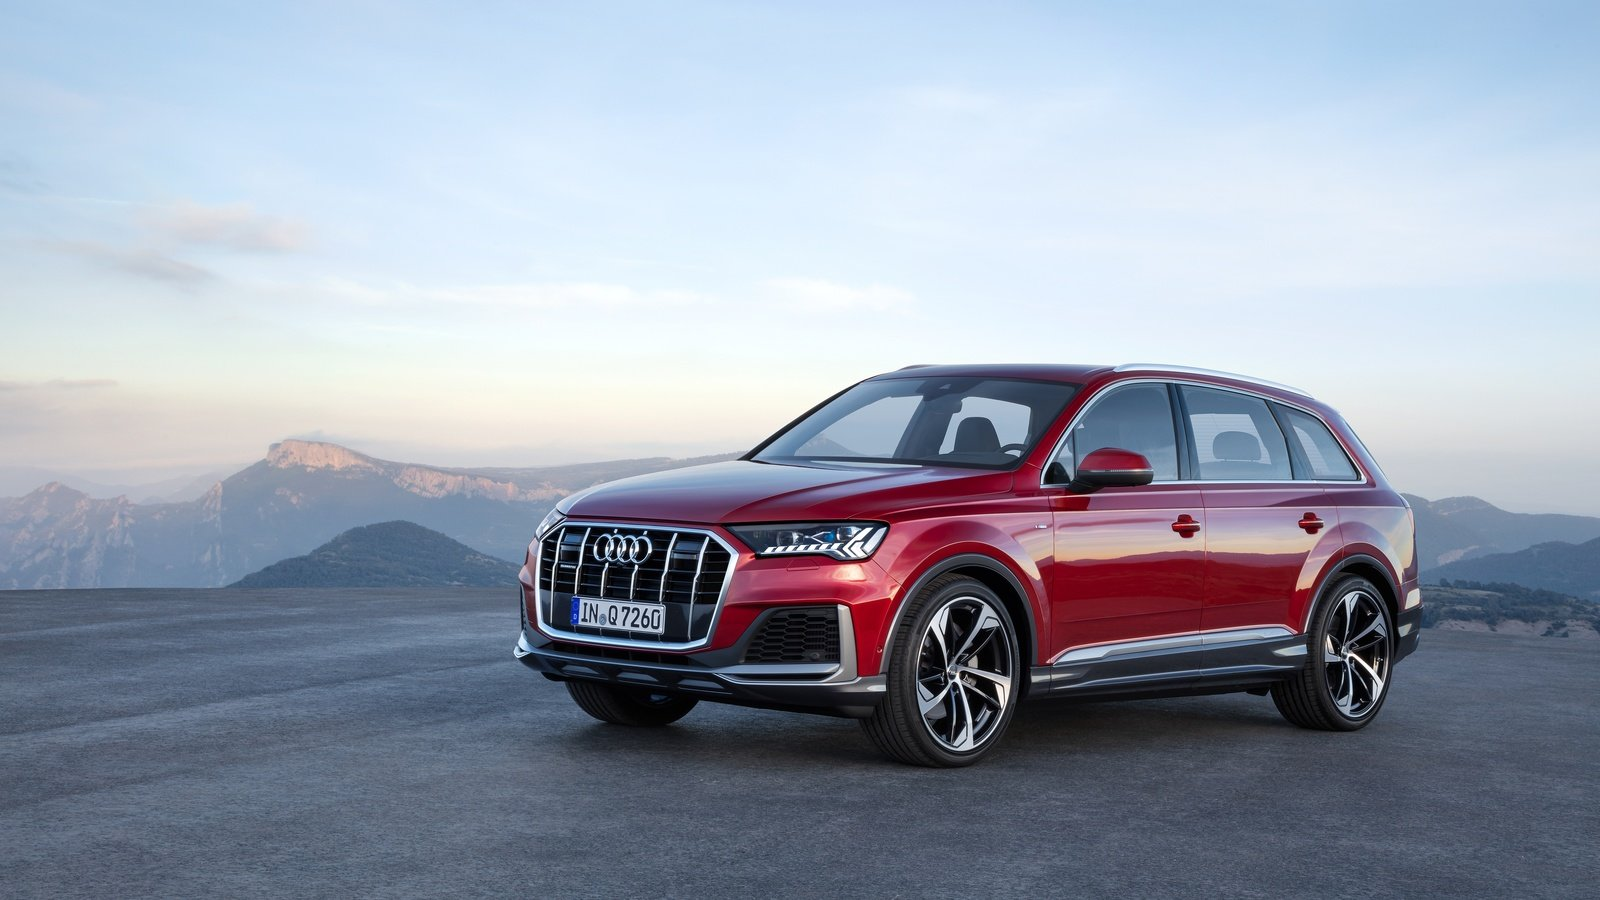 2017 - 2020 Audi Q7 Pictures, Photos, Wallpapers And ...